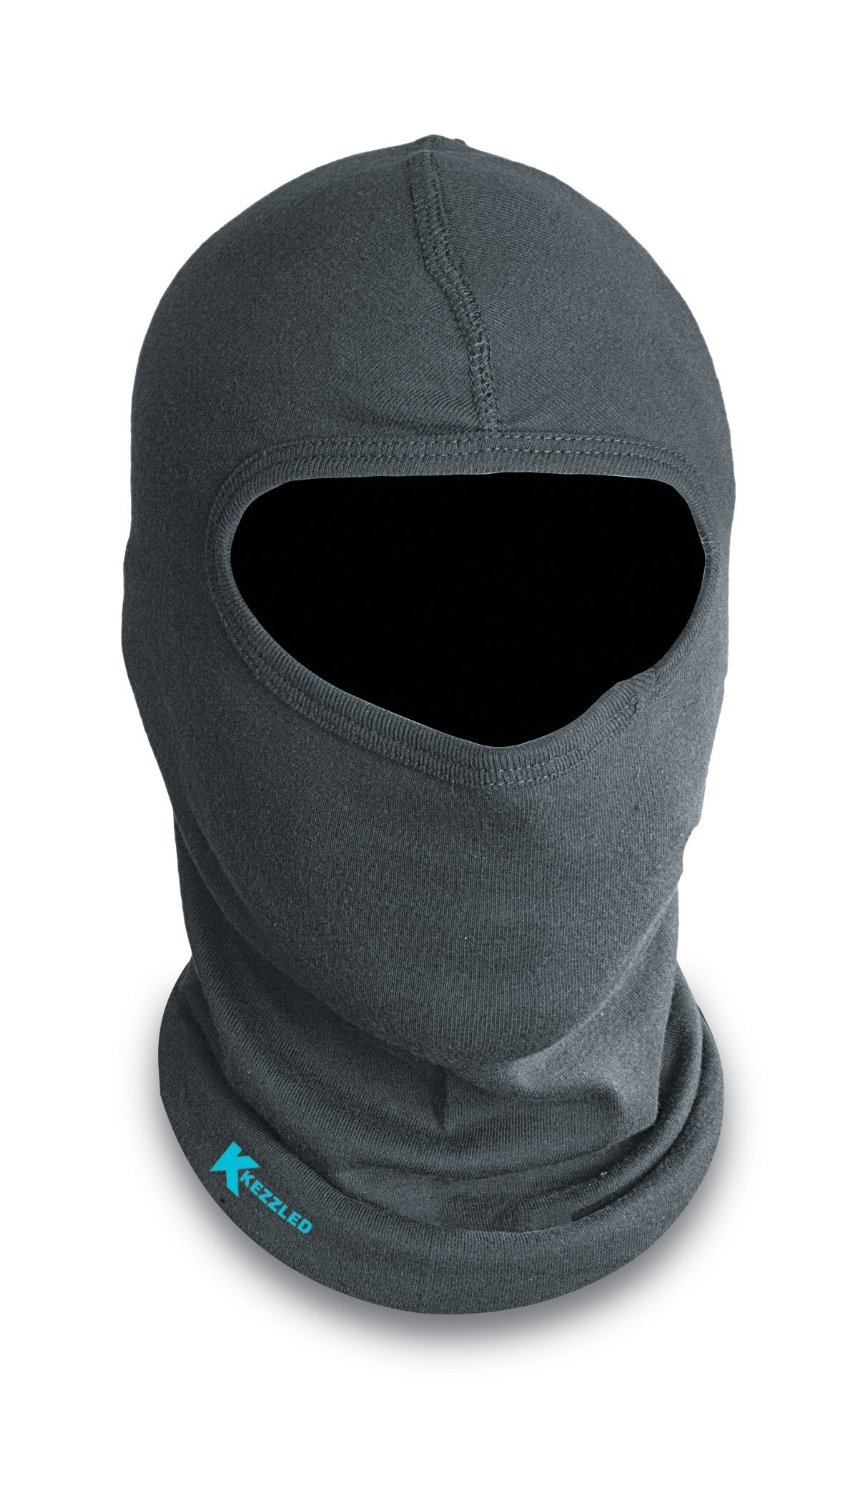 Balaclava Deluxe CoolMax Face & Neck Mask (Motor Bikers   Outdoor Sports) by Kezzled